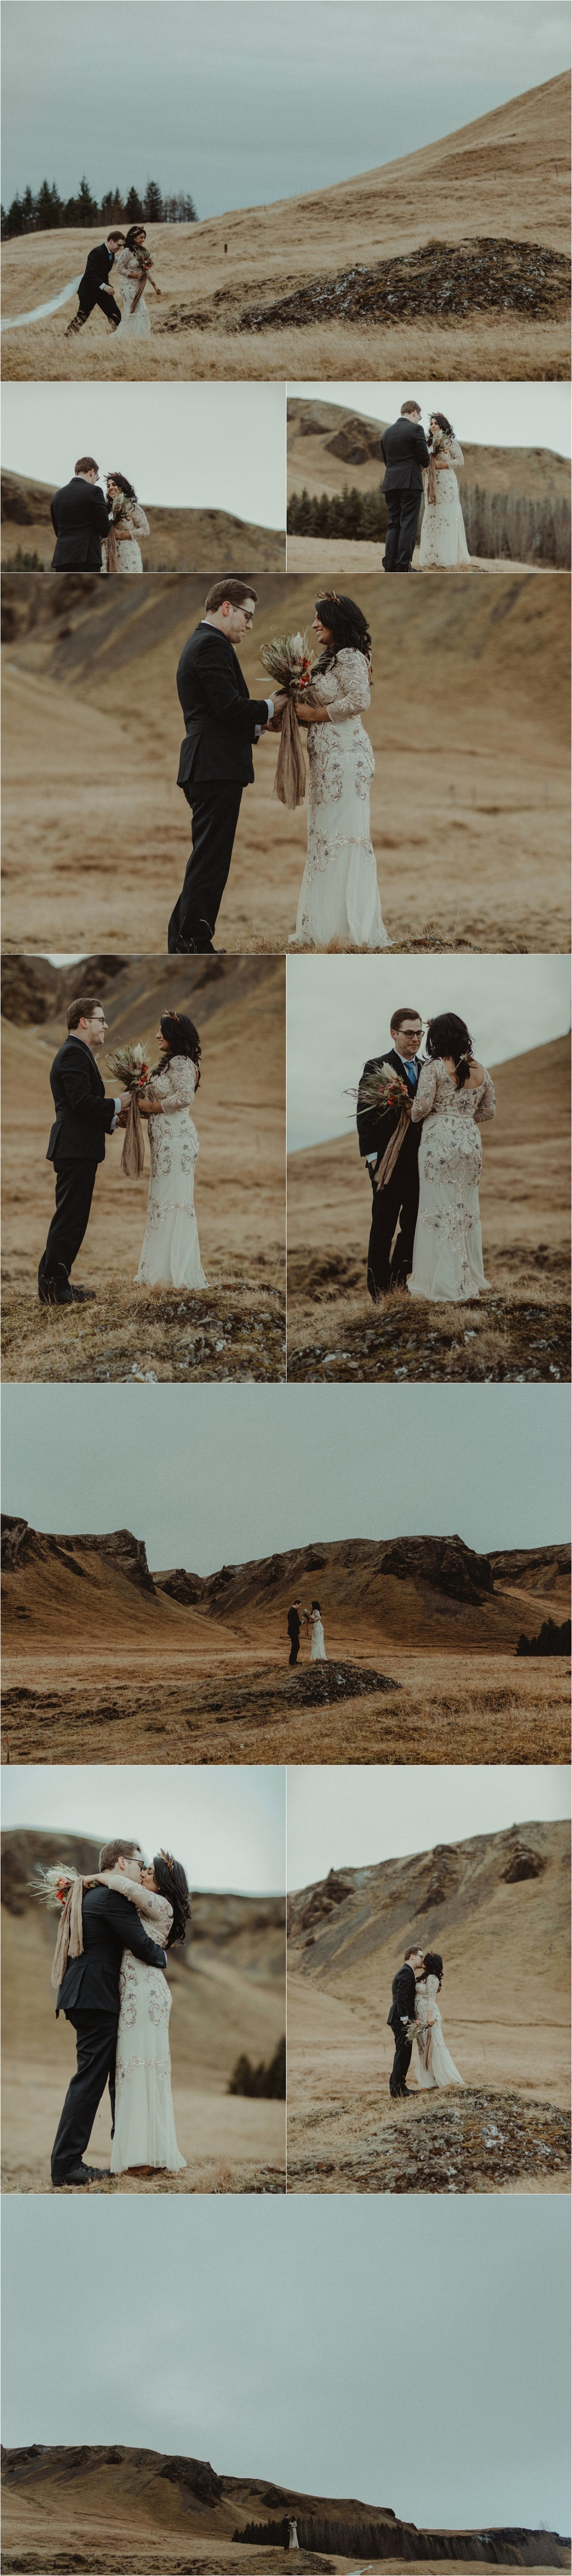 Vanna & Kevin exchange vows in the Icelandic countryside by Zakas Photography